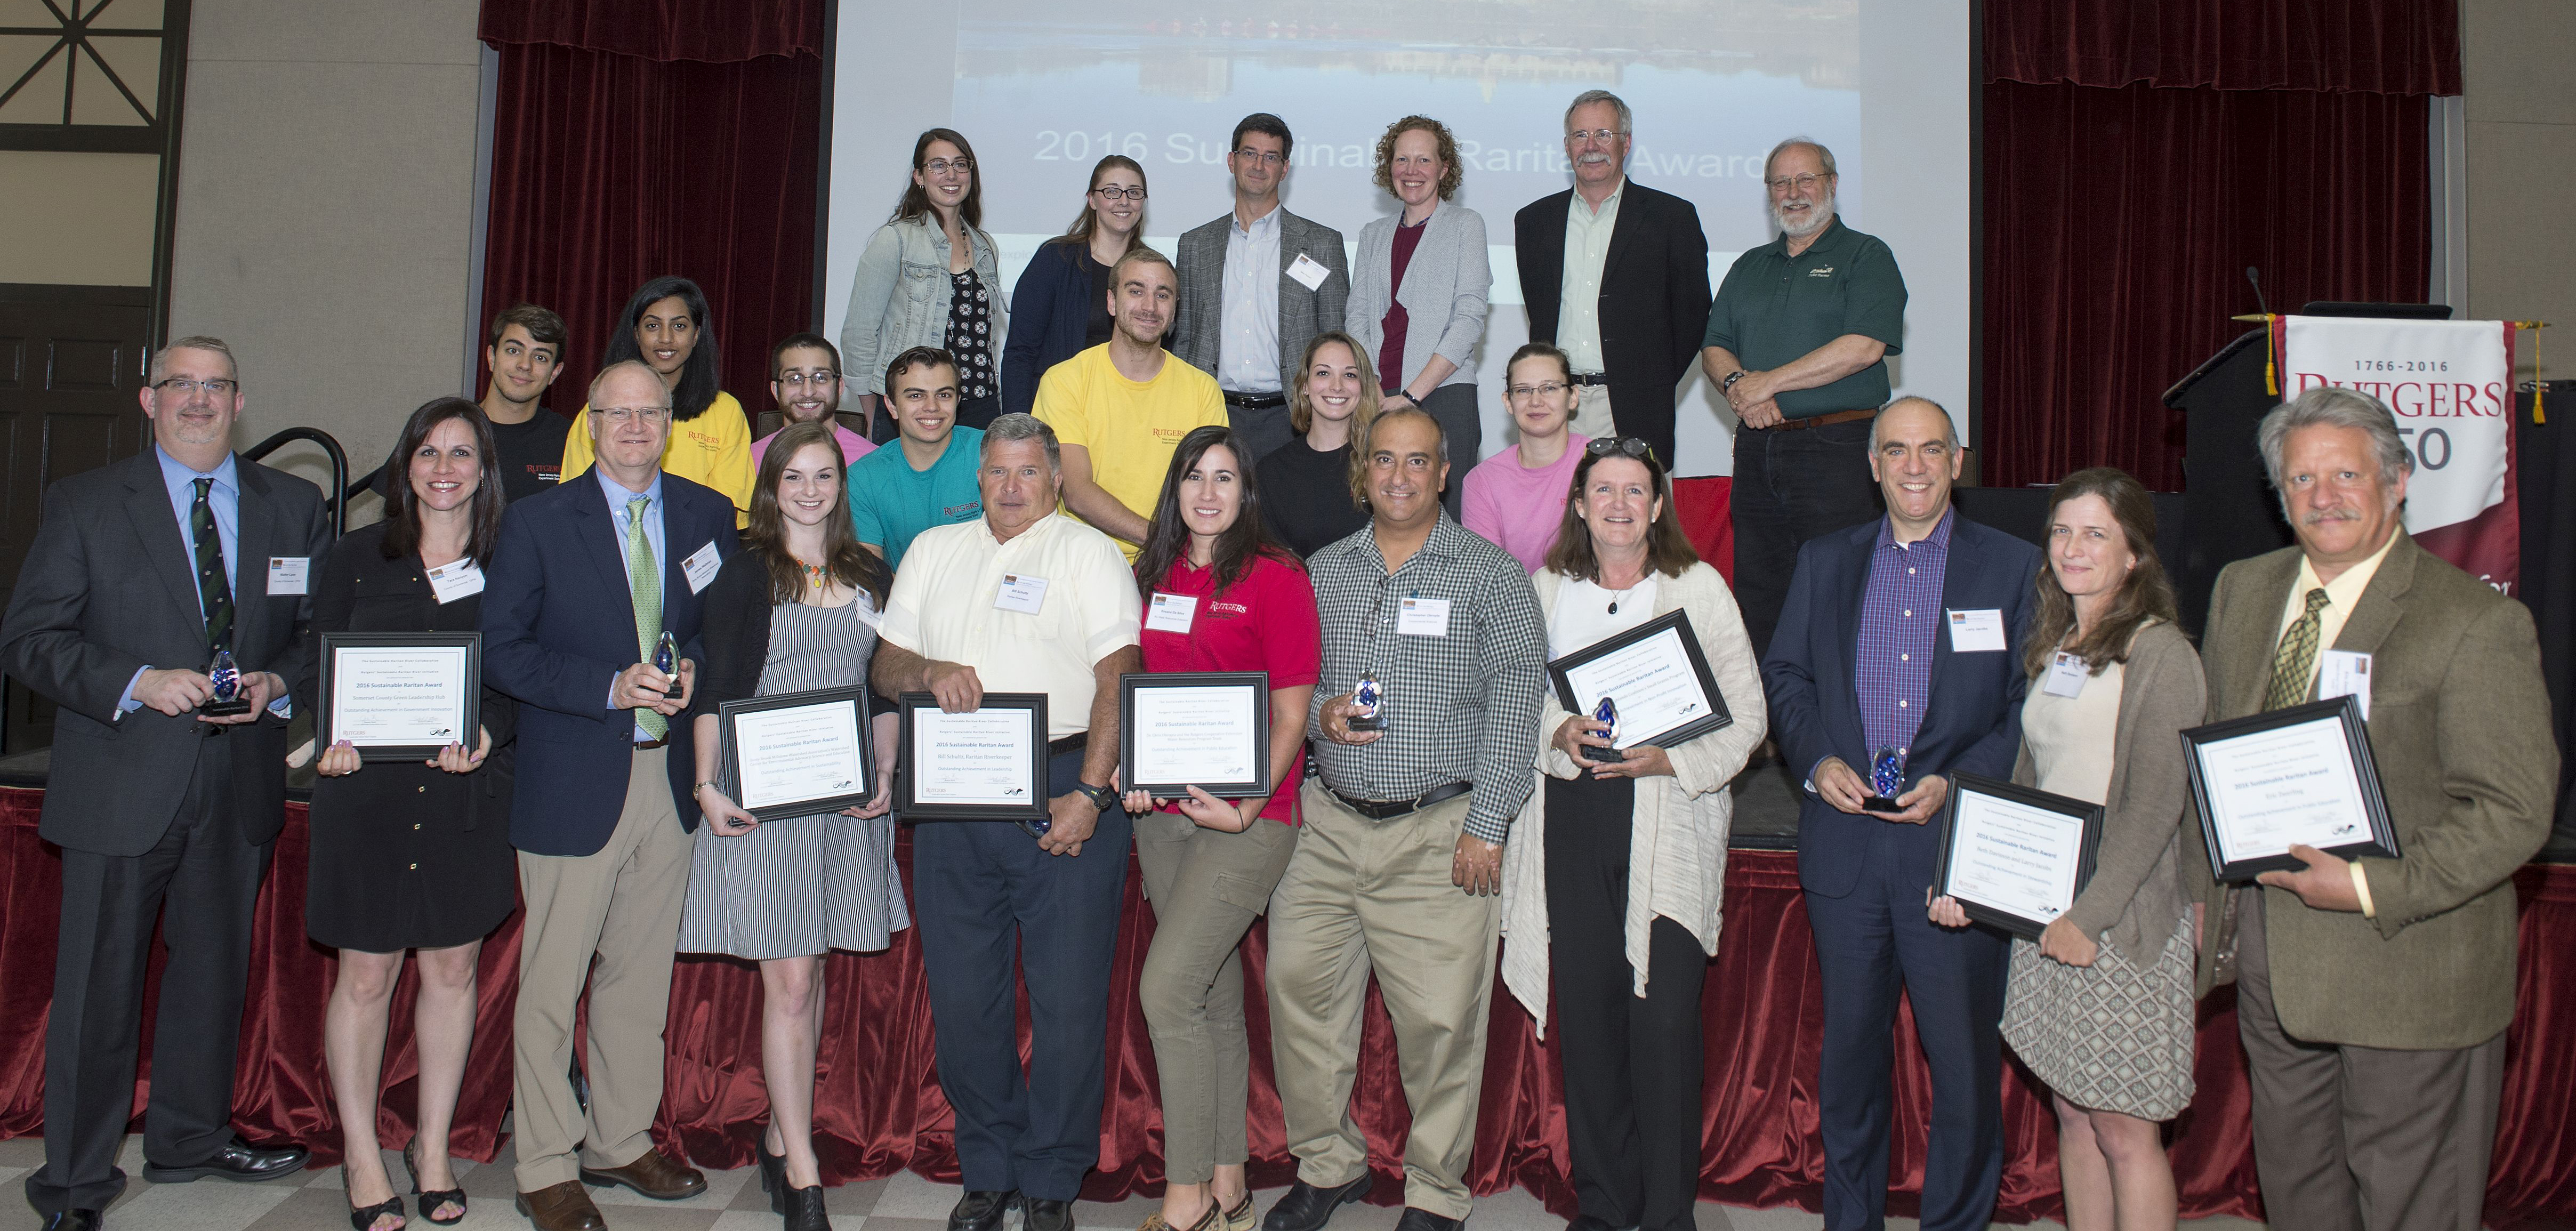 2016 awardees, left to right. Front row: Walter Lane and Tara Kenyon of Somerset County Planning Division; Jim Waltman and Kate Hutelmyer of Stony Brook-Millstone Watershed Association; Bill Schultz, Raritan Riverkeeper; Rosana Da Silva and Chris Obropta of Rutgers Cooperative Extension Water Resources Program; Julia Somers of the Highlands Coalition; Larry Jacobs and Beth Davisson; Eric Zwerling. Second row: Cody Obropta, Maithreyi Thukaram, Dominick Cardella, Tyler Obropta, Adam Cucchiara, Kaylene Campbell, Tekla Pontius-Courtney with Rutgers Cooperative Extension Water Resources Program. Third row: Brittany Musolino, Erin Stretz and Mike Pisauro of Stony Brook-Millstone Watershed Association; Debbie Mans; Bill Kibler; Michael Catania. Not shown: Candace Ashmun. Photo credit: Nick Romanenko.